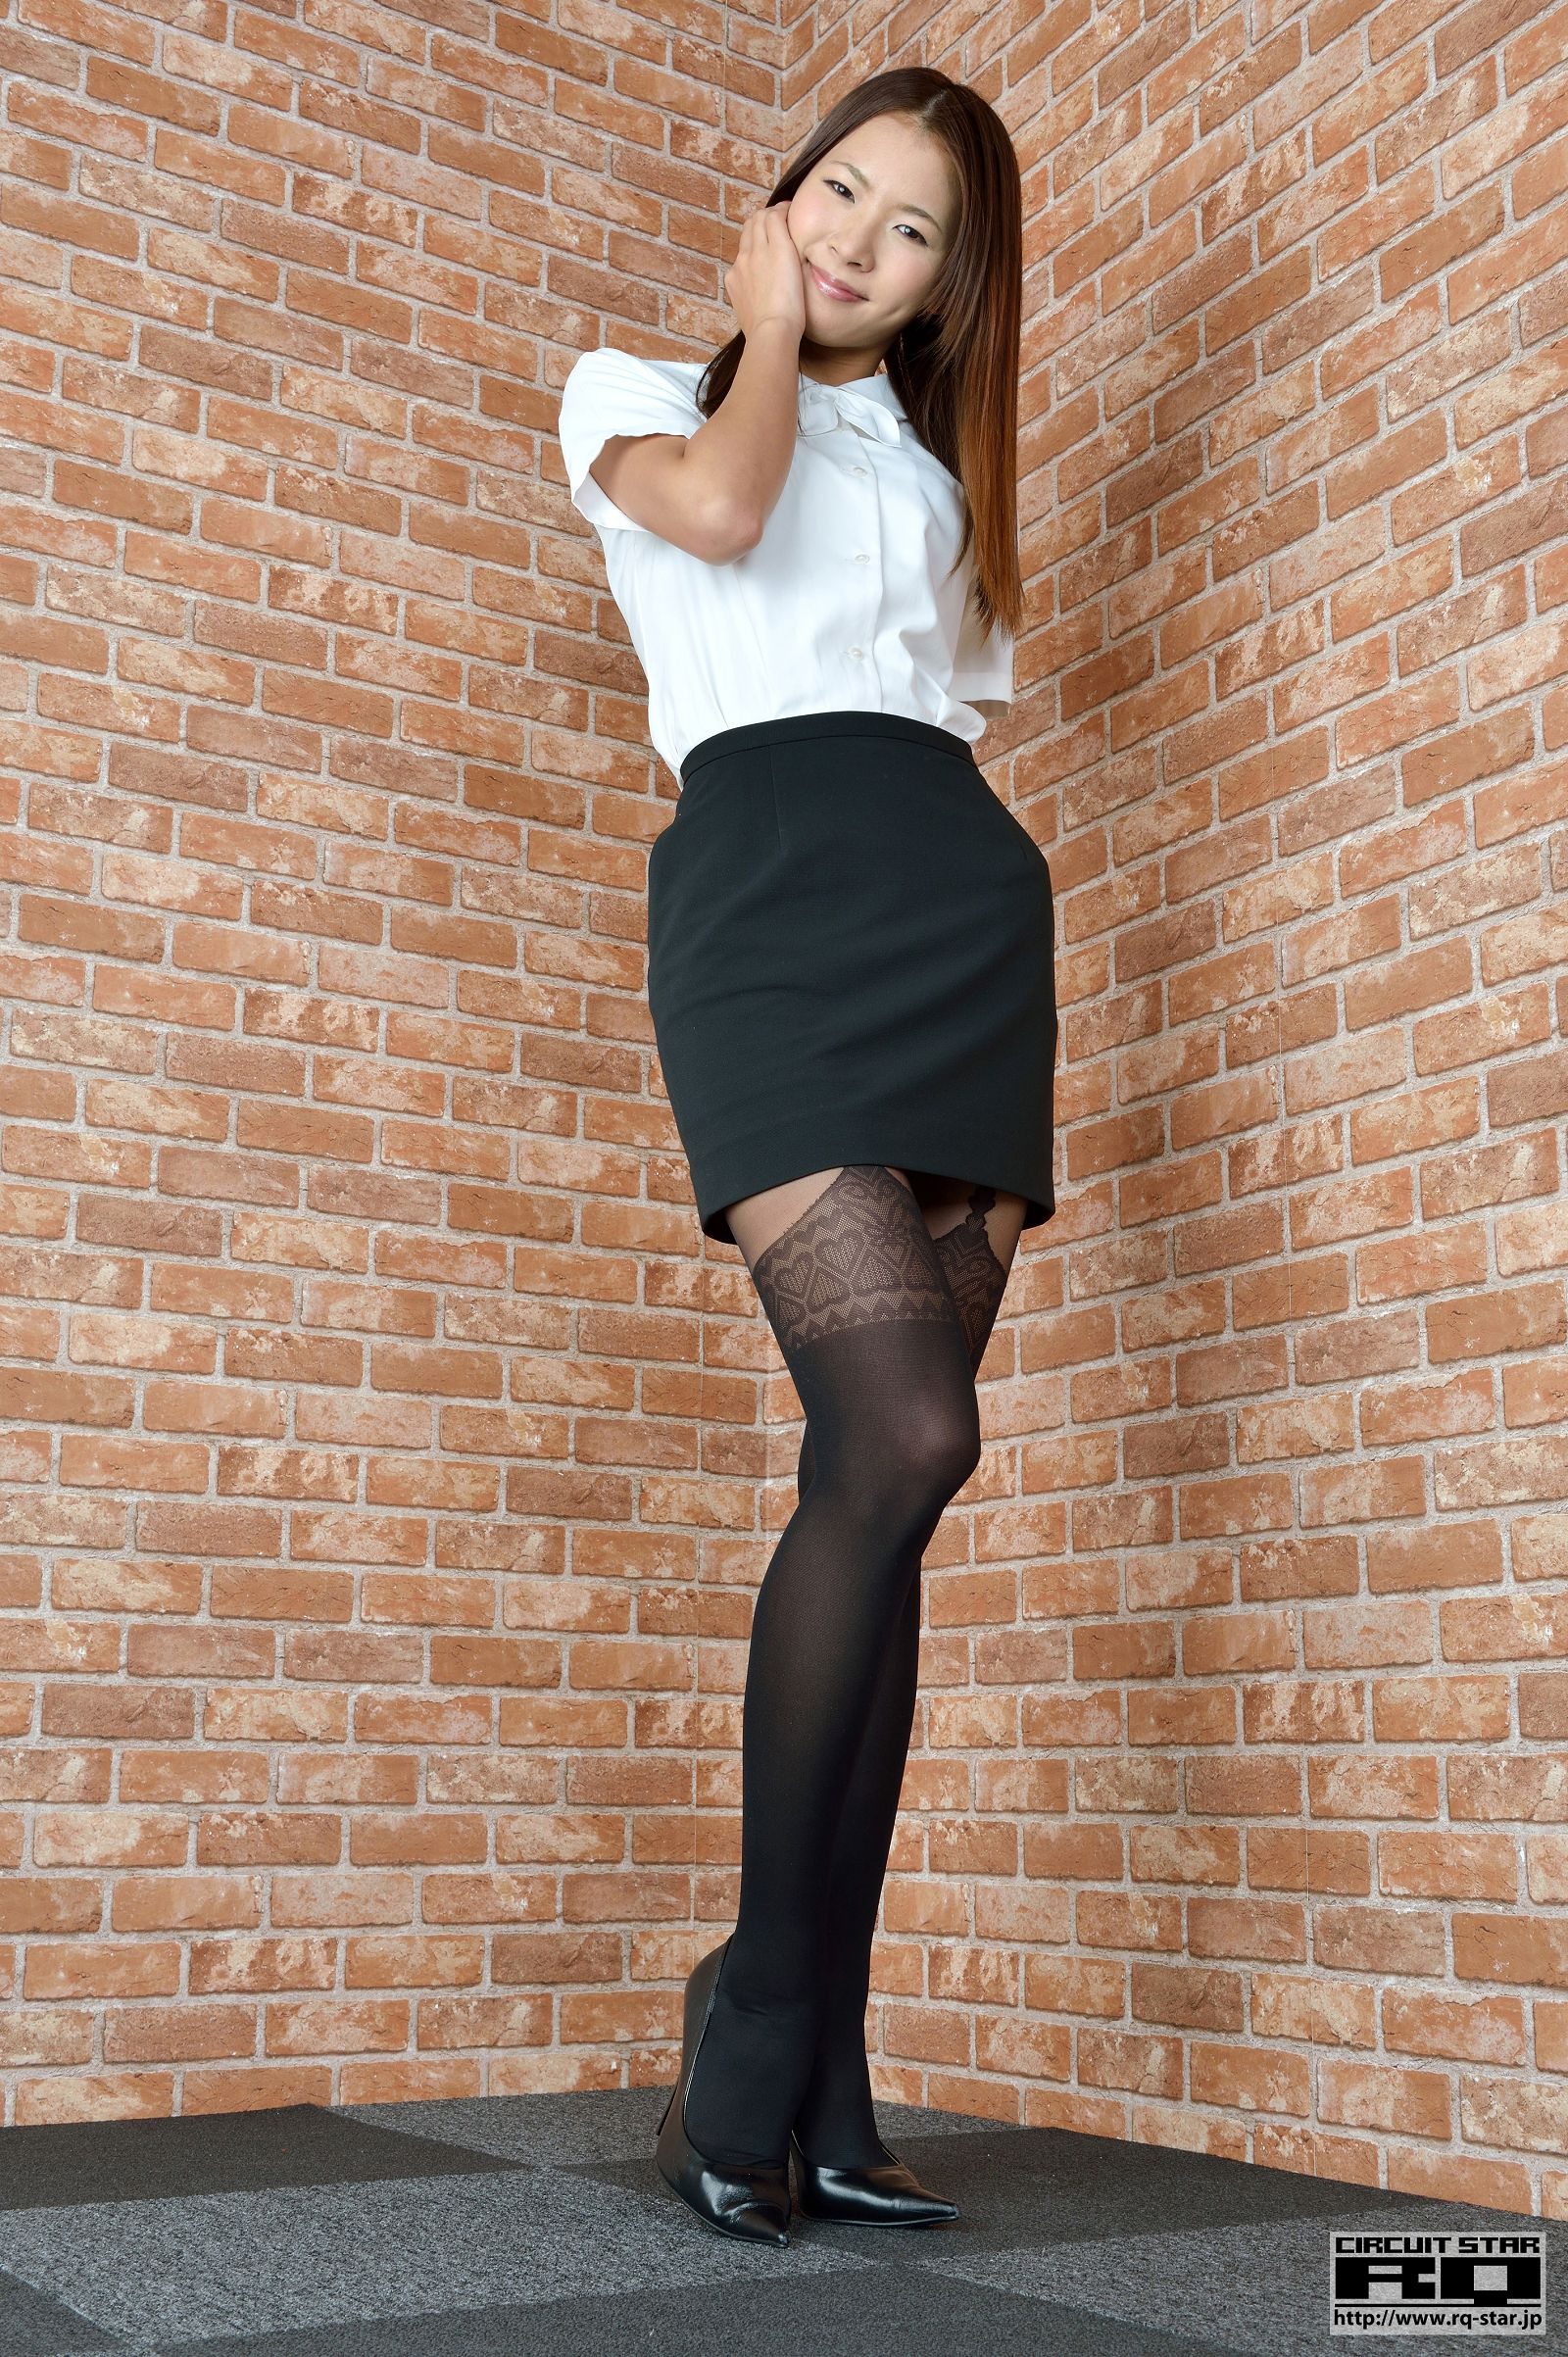 [RQ STAR美女] NO.00746 Saeko Kaname 要さえこ Office Lady[90P] RQ STAR 第1张